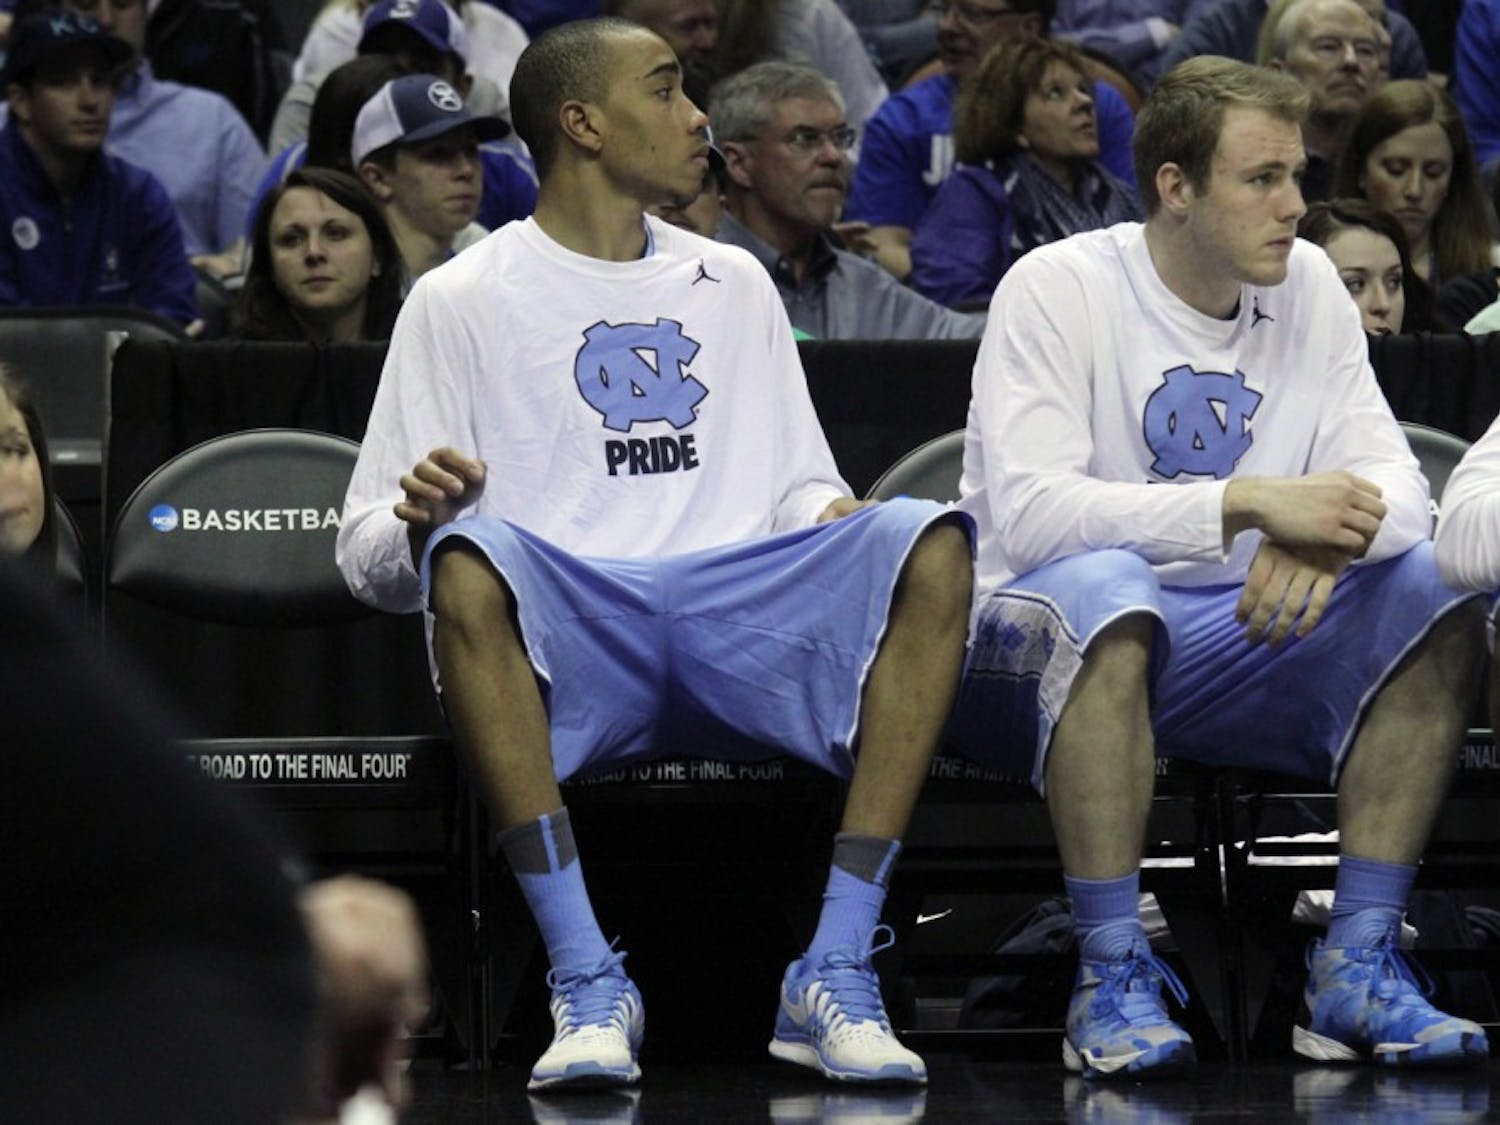 Brice Johnson watched most of the game from the bench after an injury sent him out of the game in the first half. The UNC men's basketball team lost to Iowa State 85-83 in the third round of the NCAA tournament.